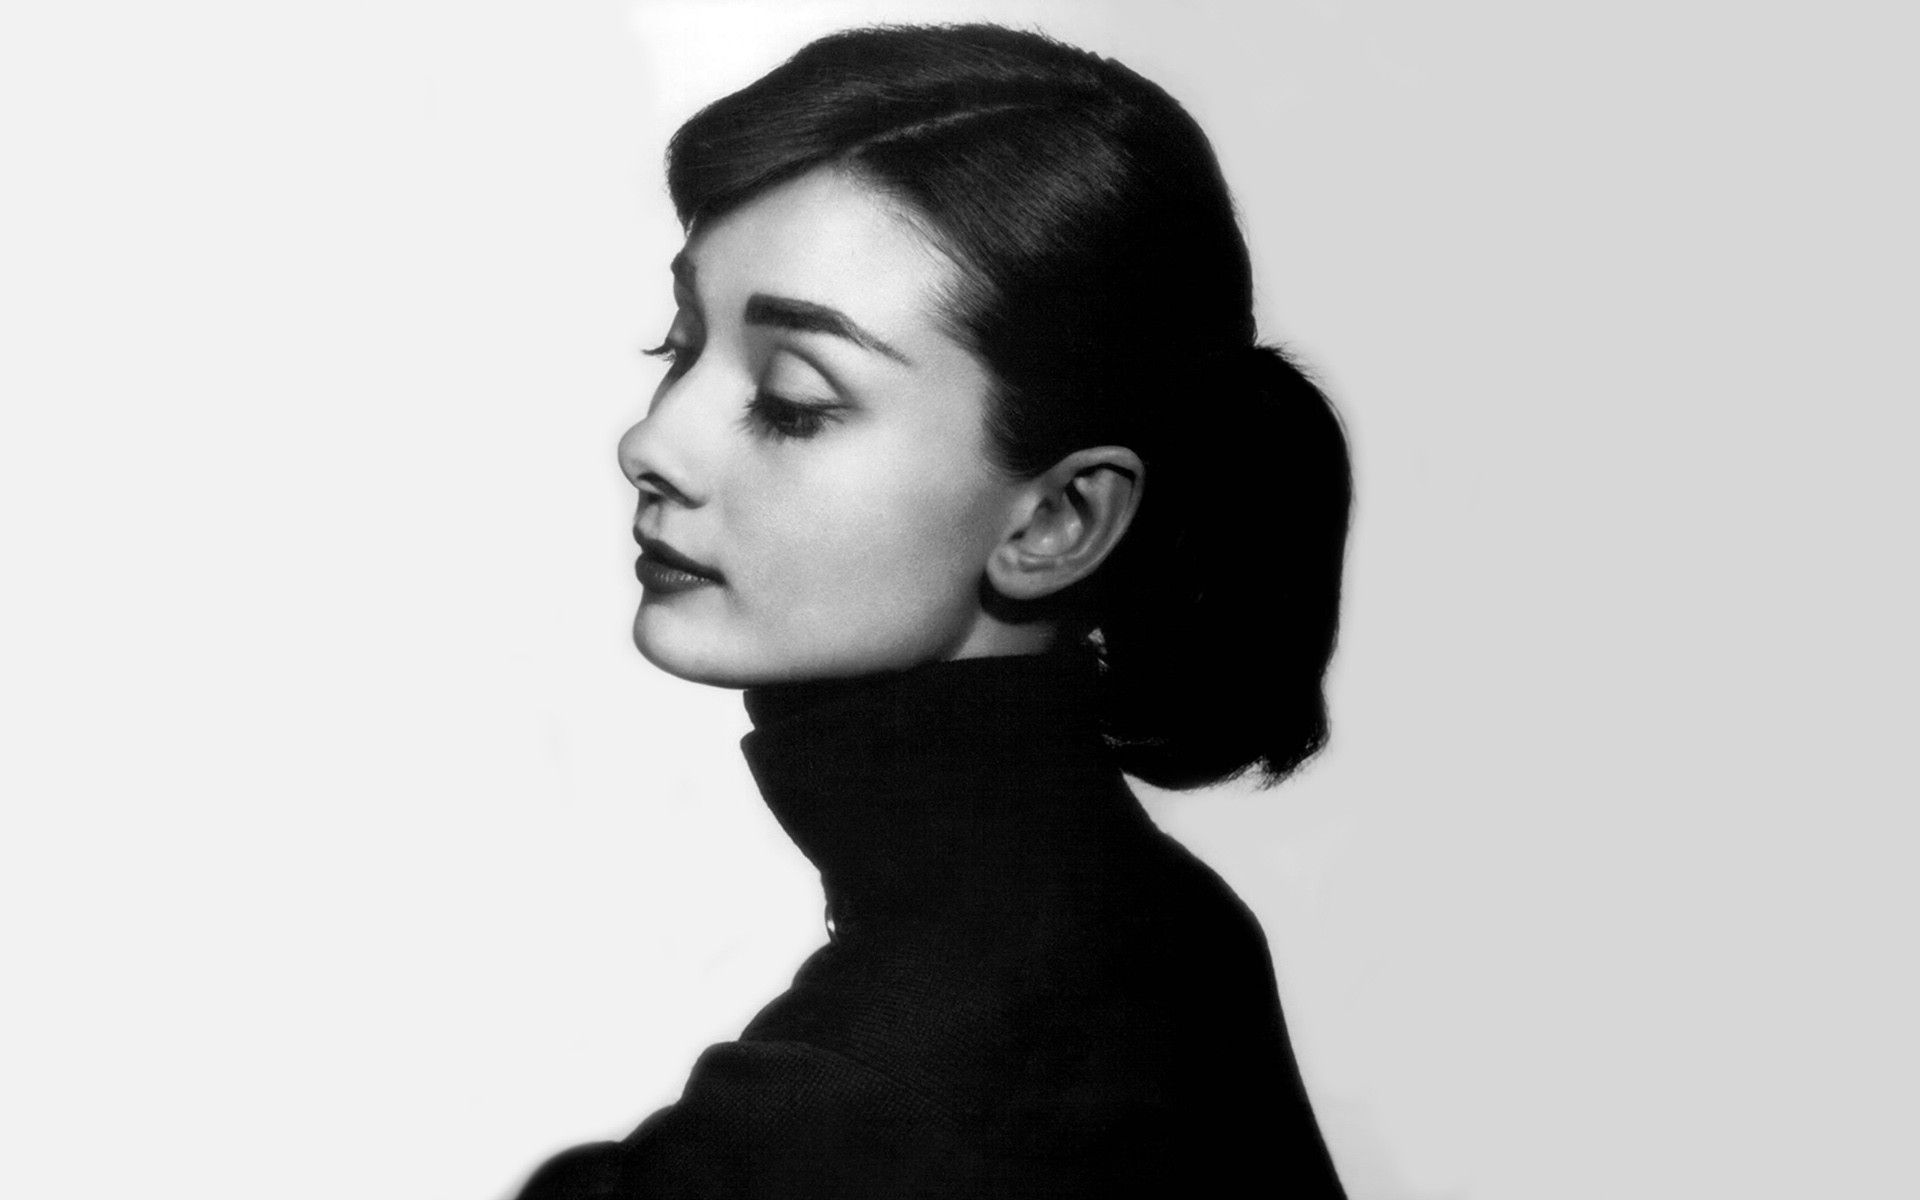 Audrey Hepburn Wallpapers   Full HD wallpaper search 1920x1200